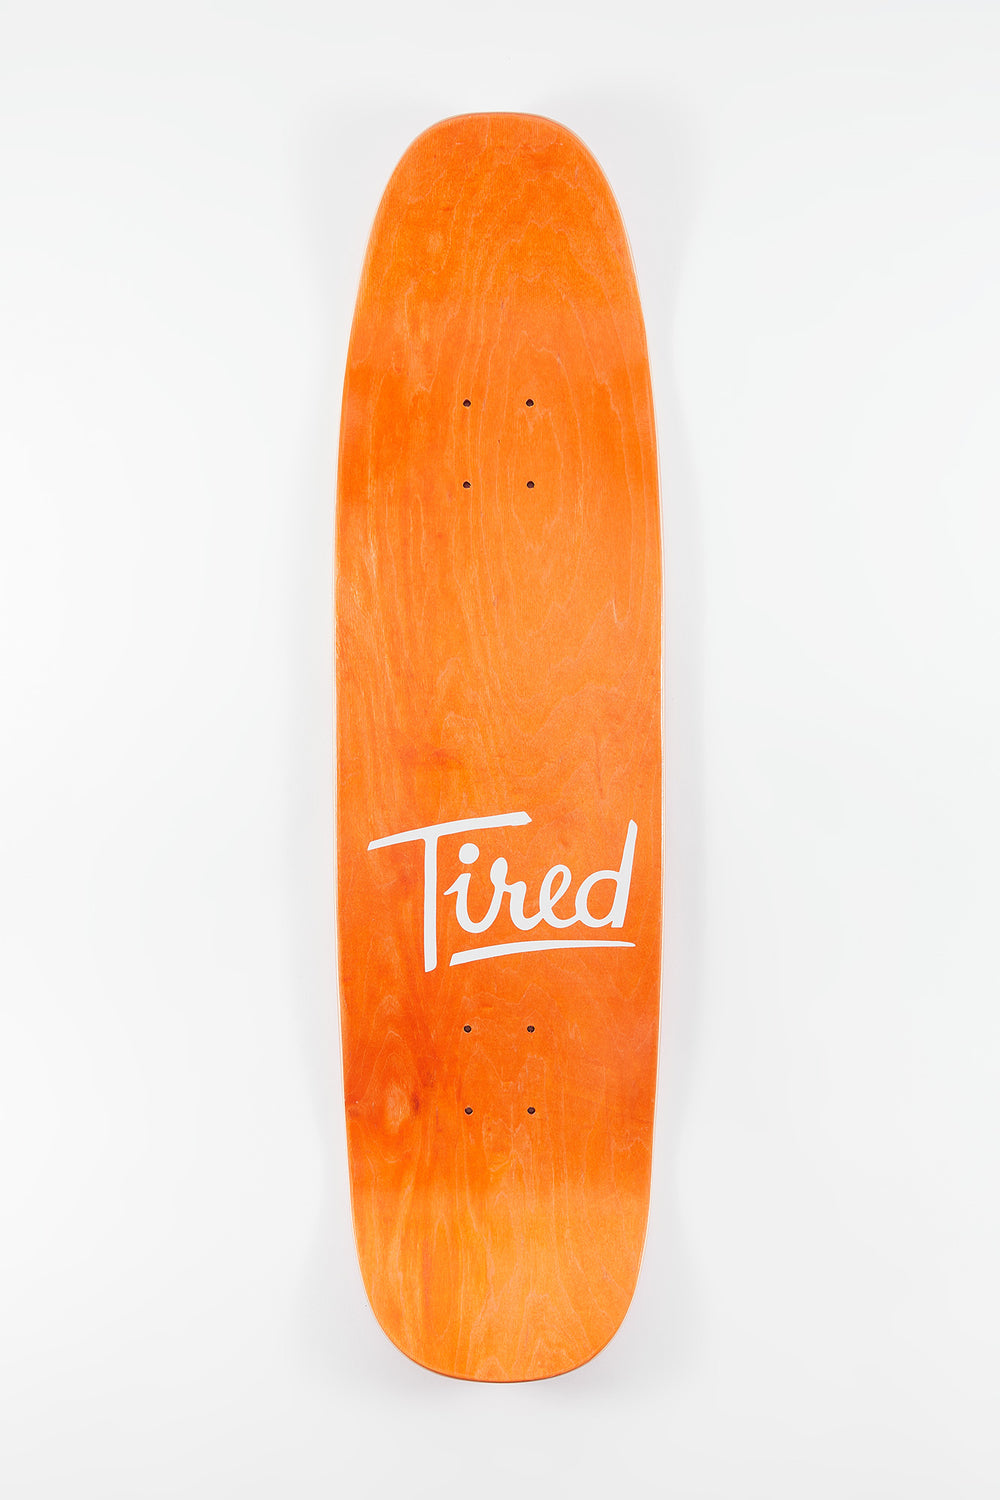 Tired Three For One Skateboard Deck 8.5